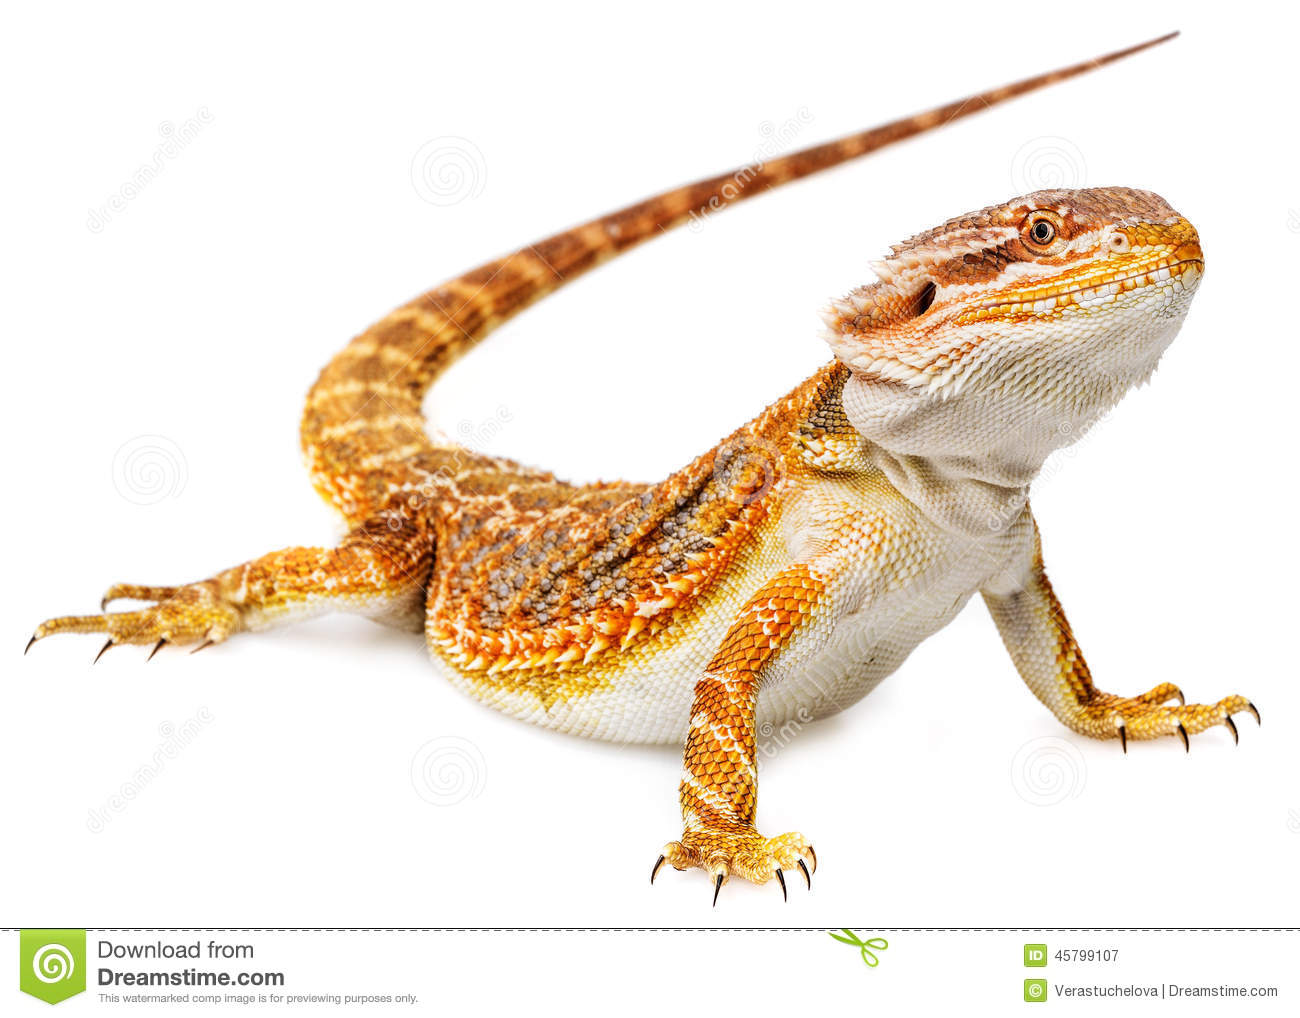 Bearded Dragon - Pogona Vitticeps Stock Photo - Image: 45799107